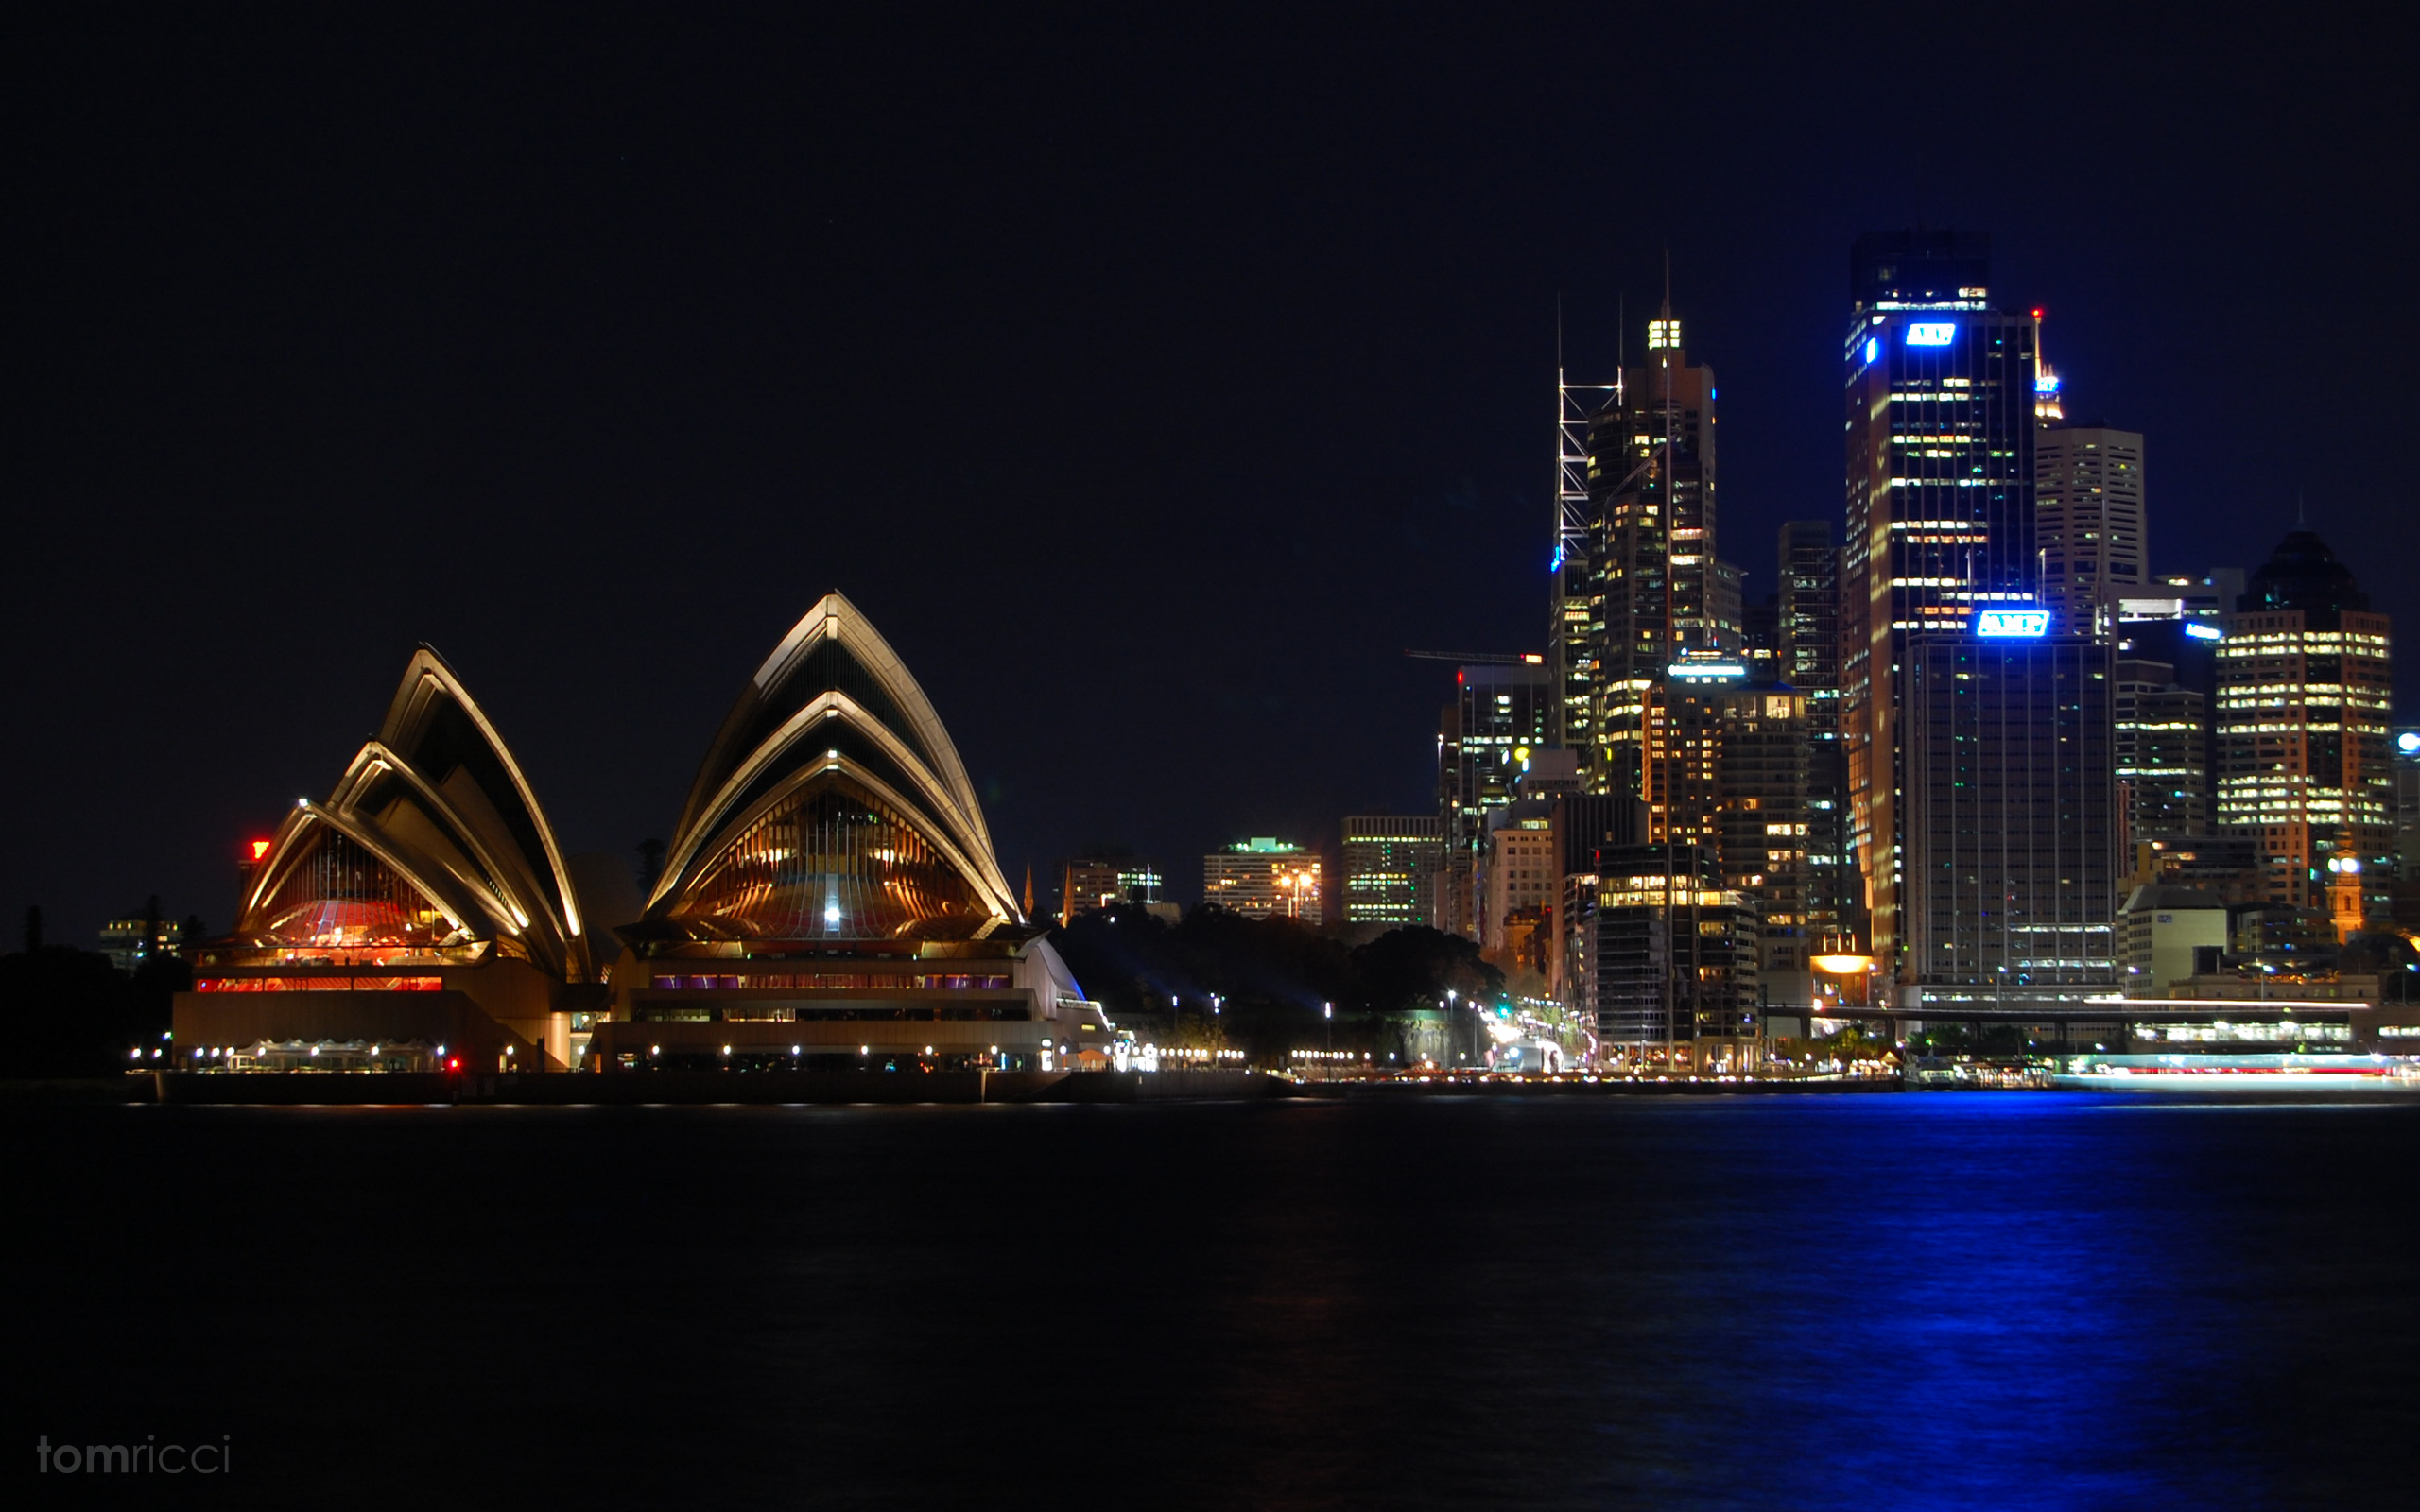 Download Sydney Opera House Desktop Backgrounds Photos in HD High 2560x1600